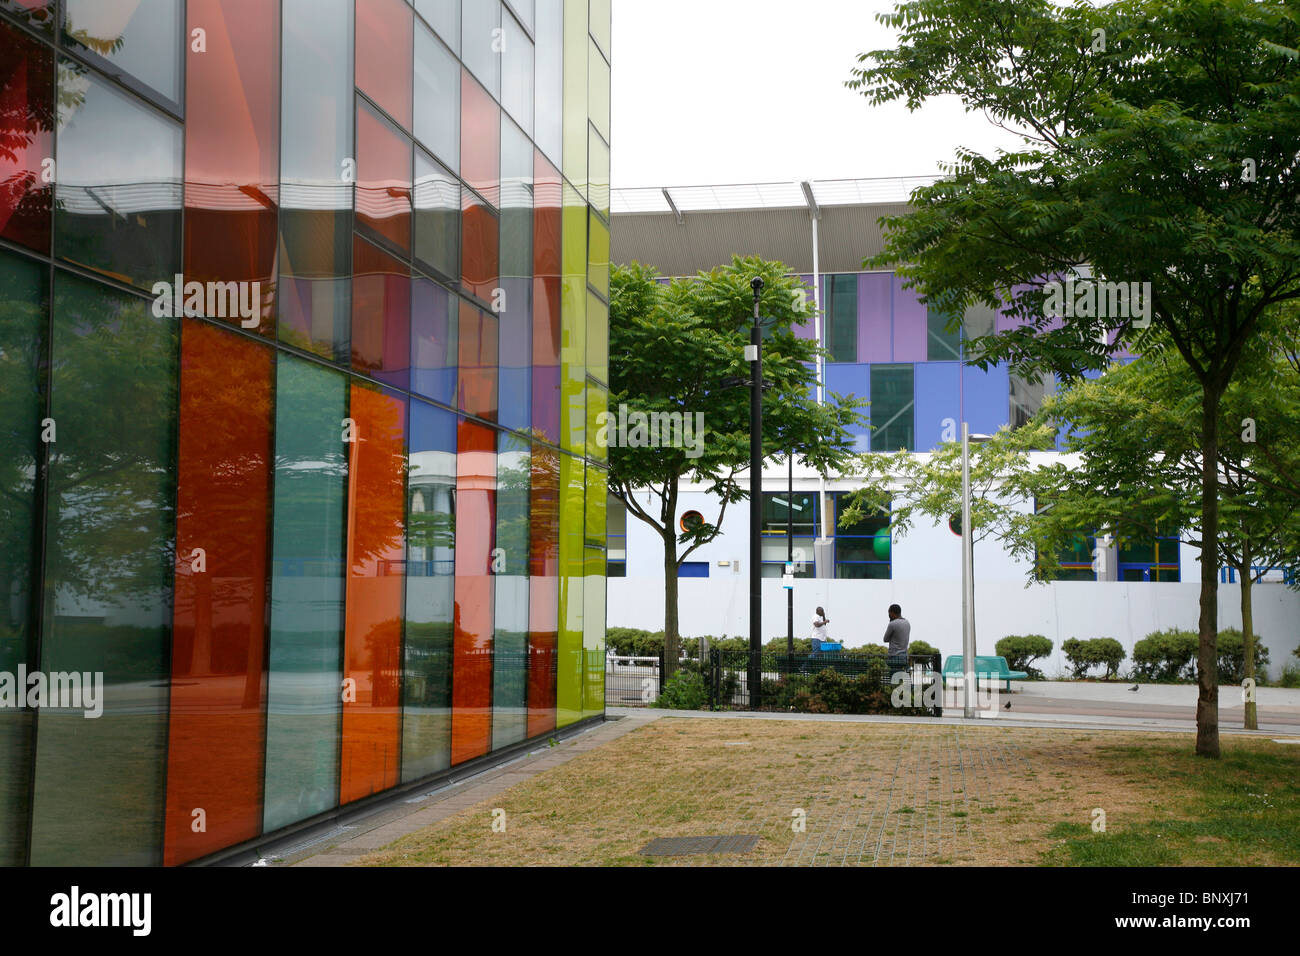 Peckham Library and Peckham Pulse, Peckham, London, UK - Stock Image